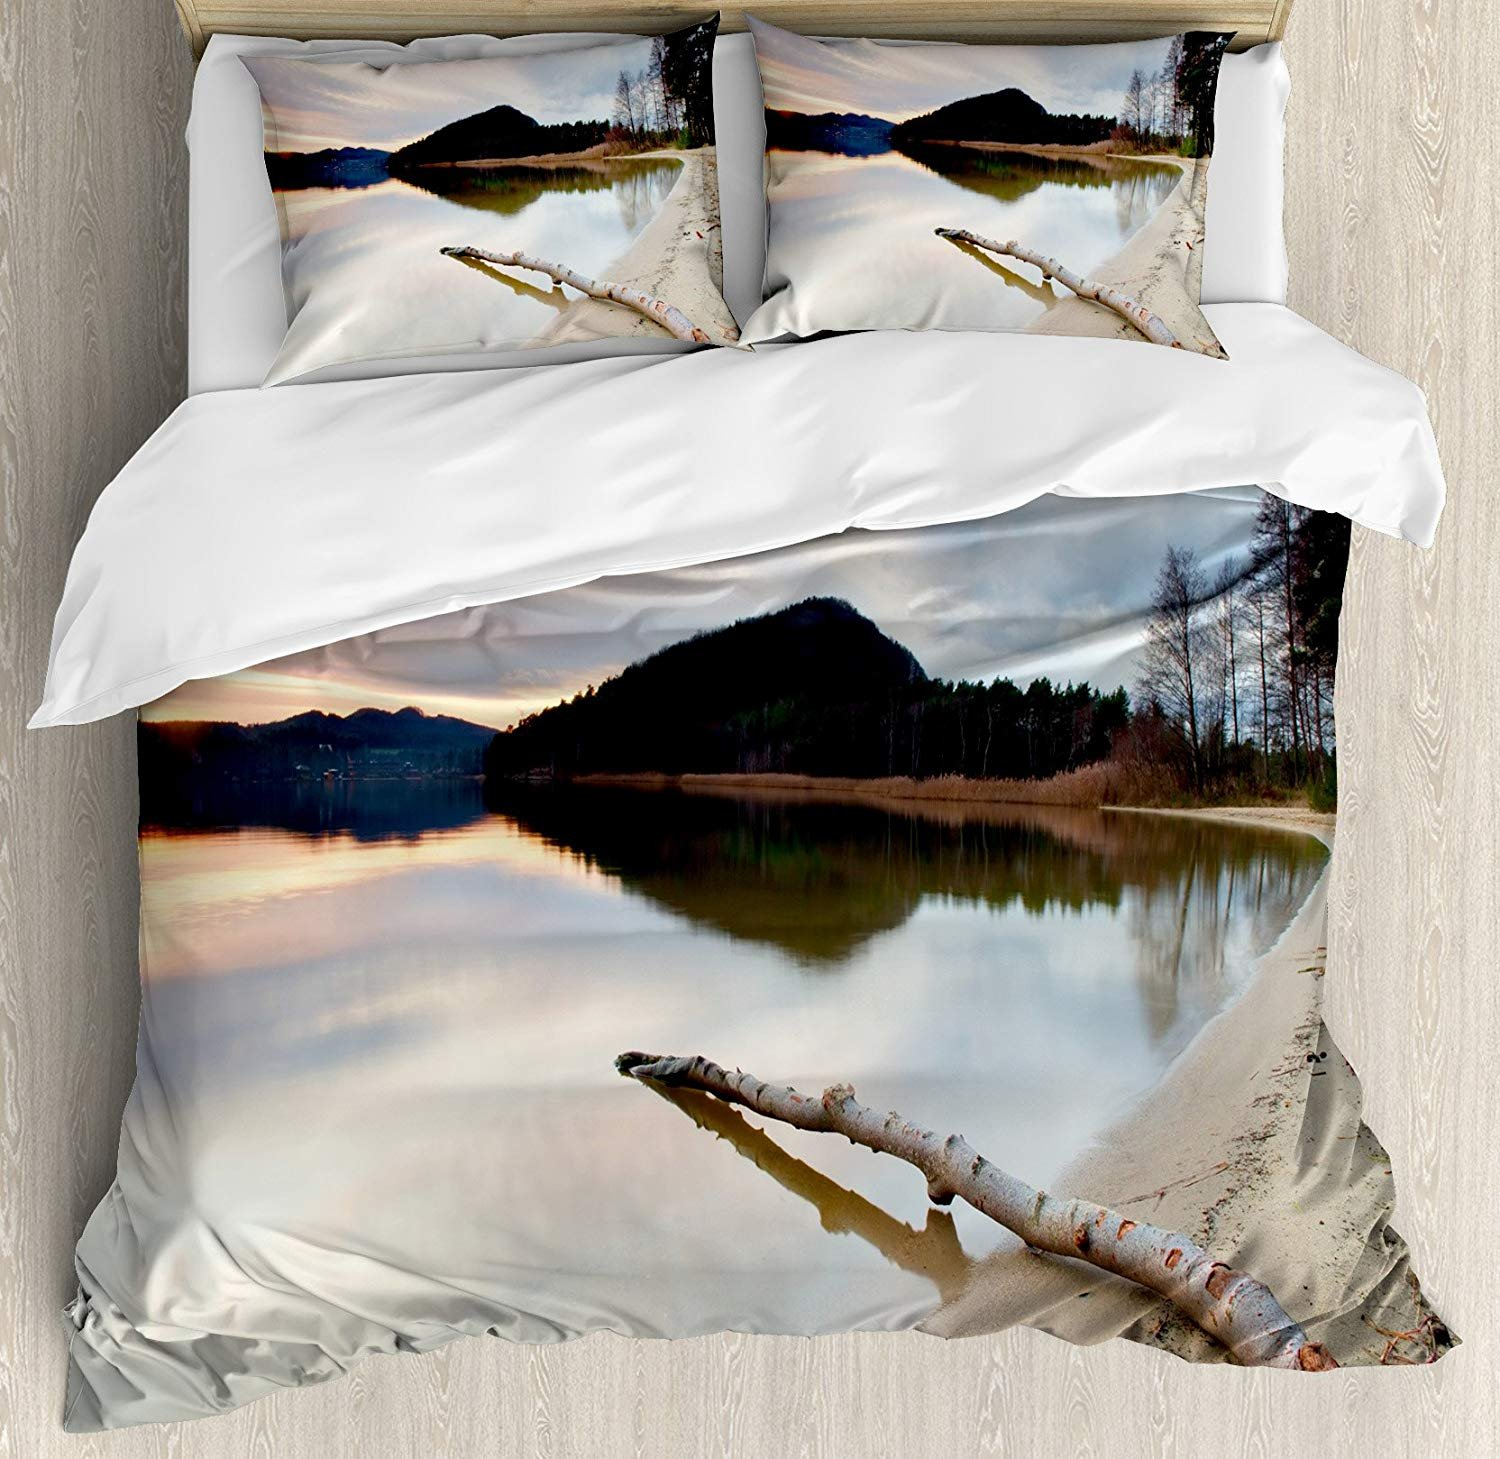 Driftwood Bedding Duvet Cover Sets for Children/Adult/Kids/Teens Twin Size, Landscape of Lake Shoreline with The Dead Tree Trunk in The Water Digital Print, Hotel Luxury Decorative 4pcs, Sand Brown